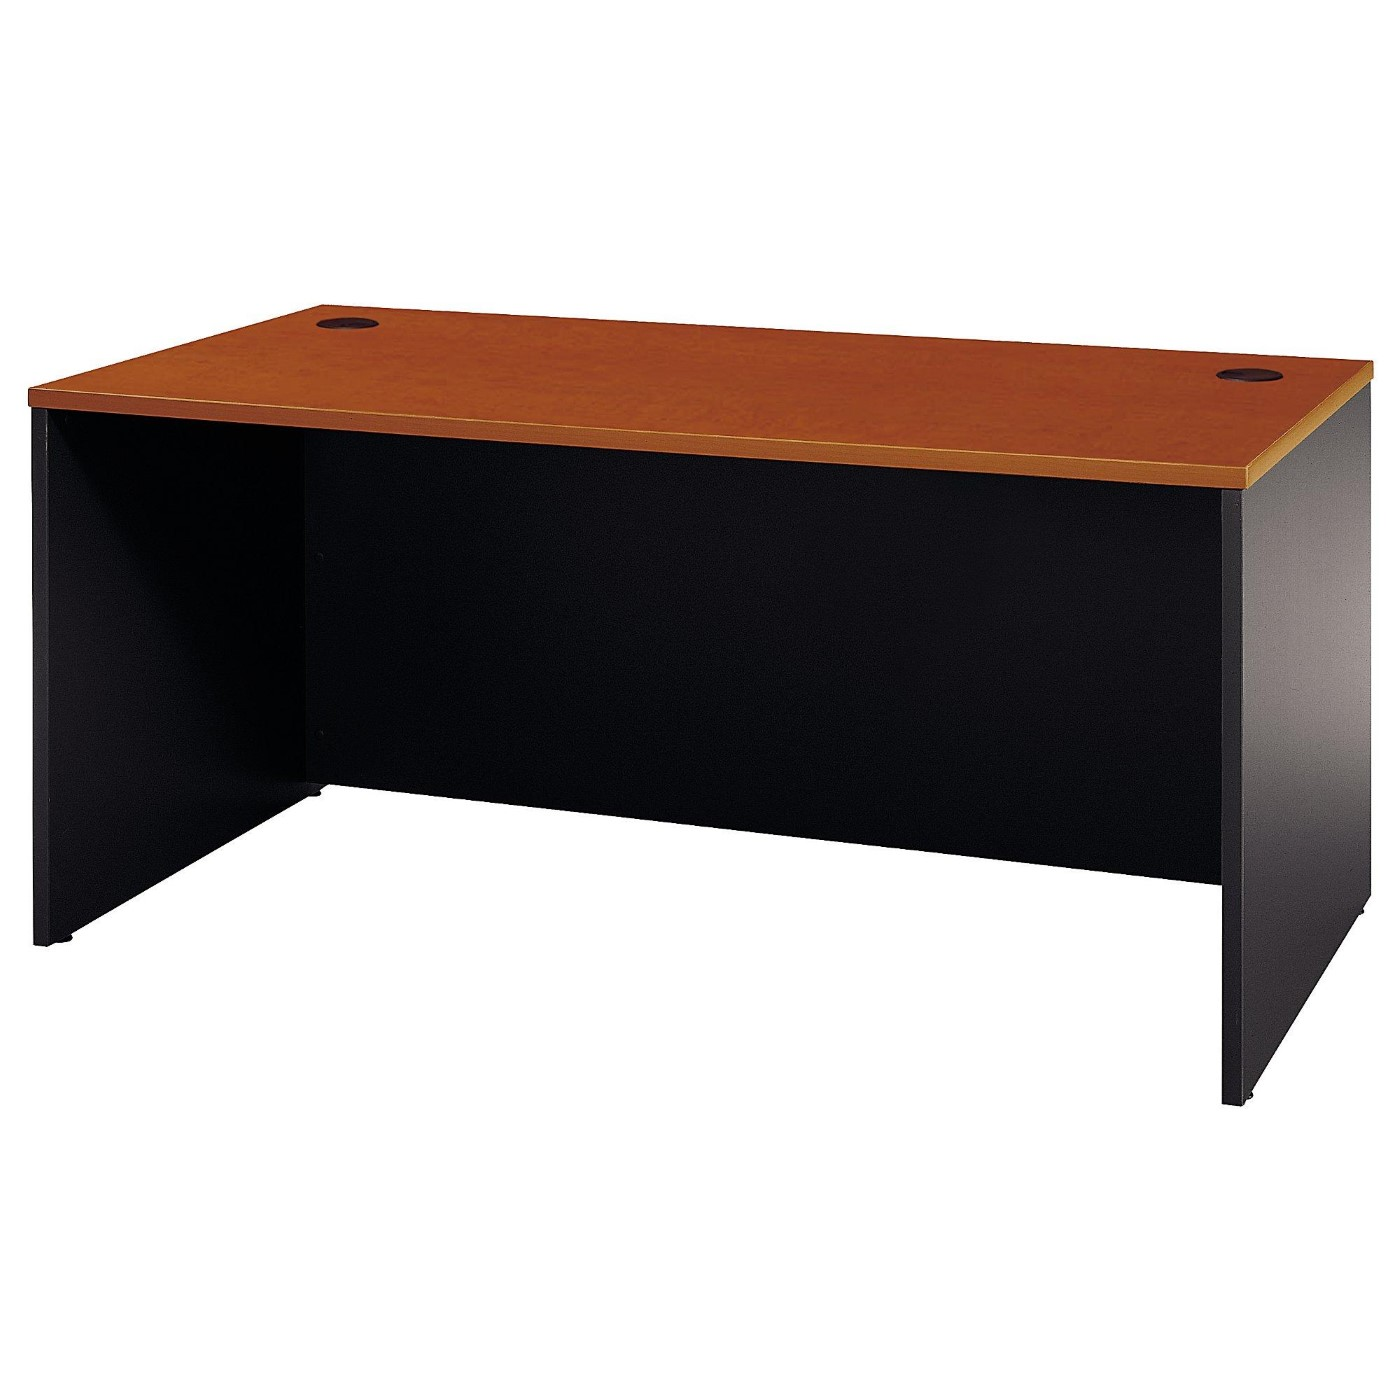 BUSH BUSINESS FURNITURE SERIES C 66W X 30D OFFICE DESK. FREE SHIPPING.